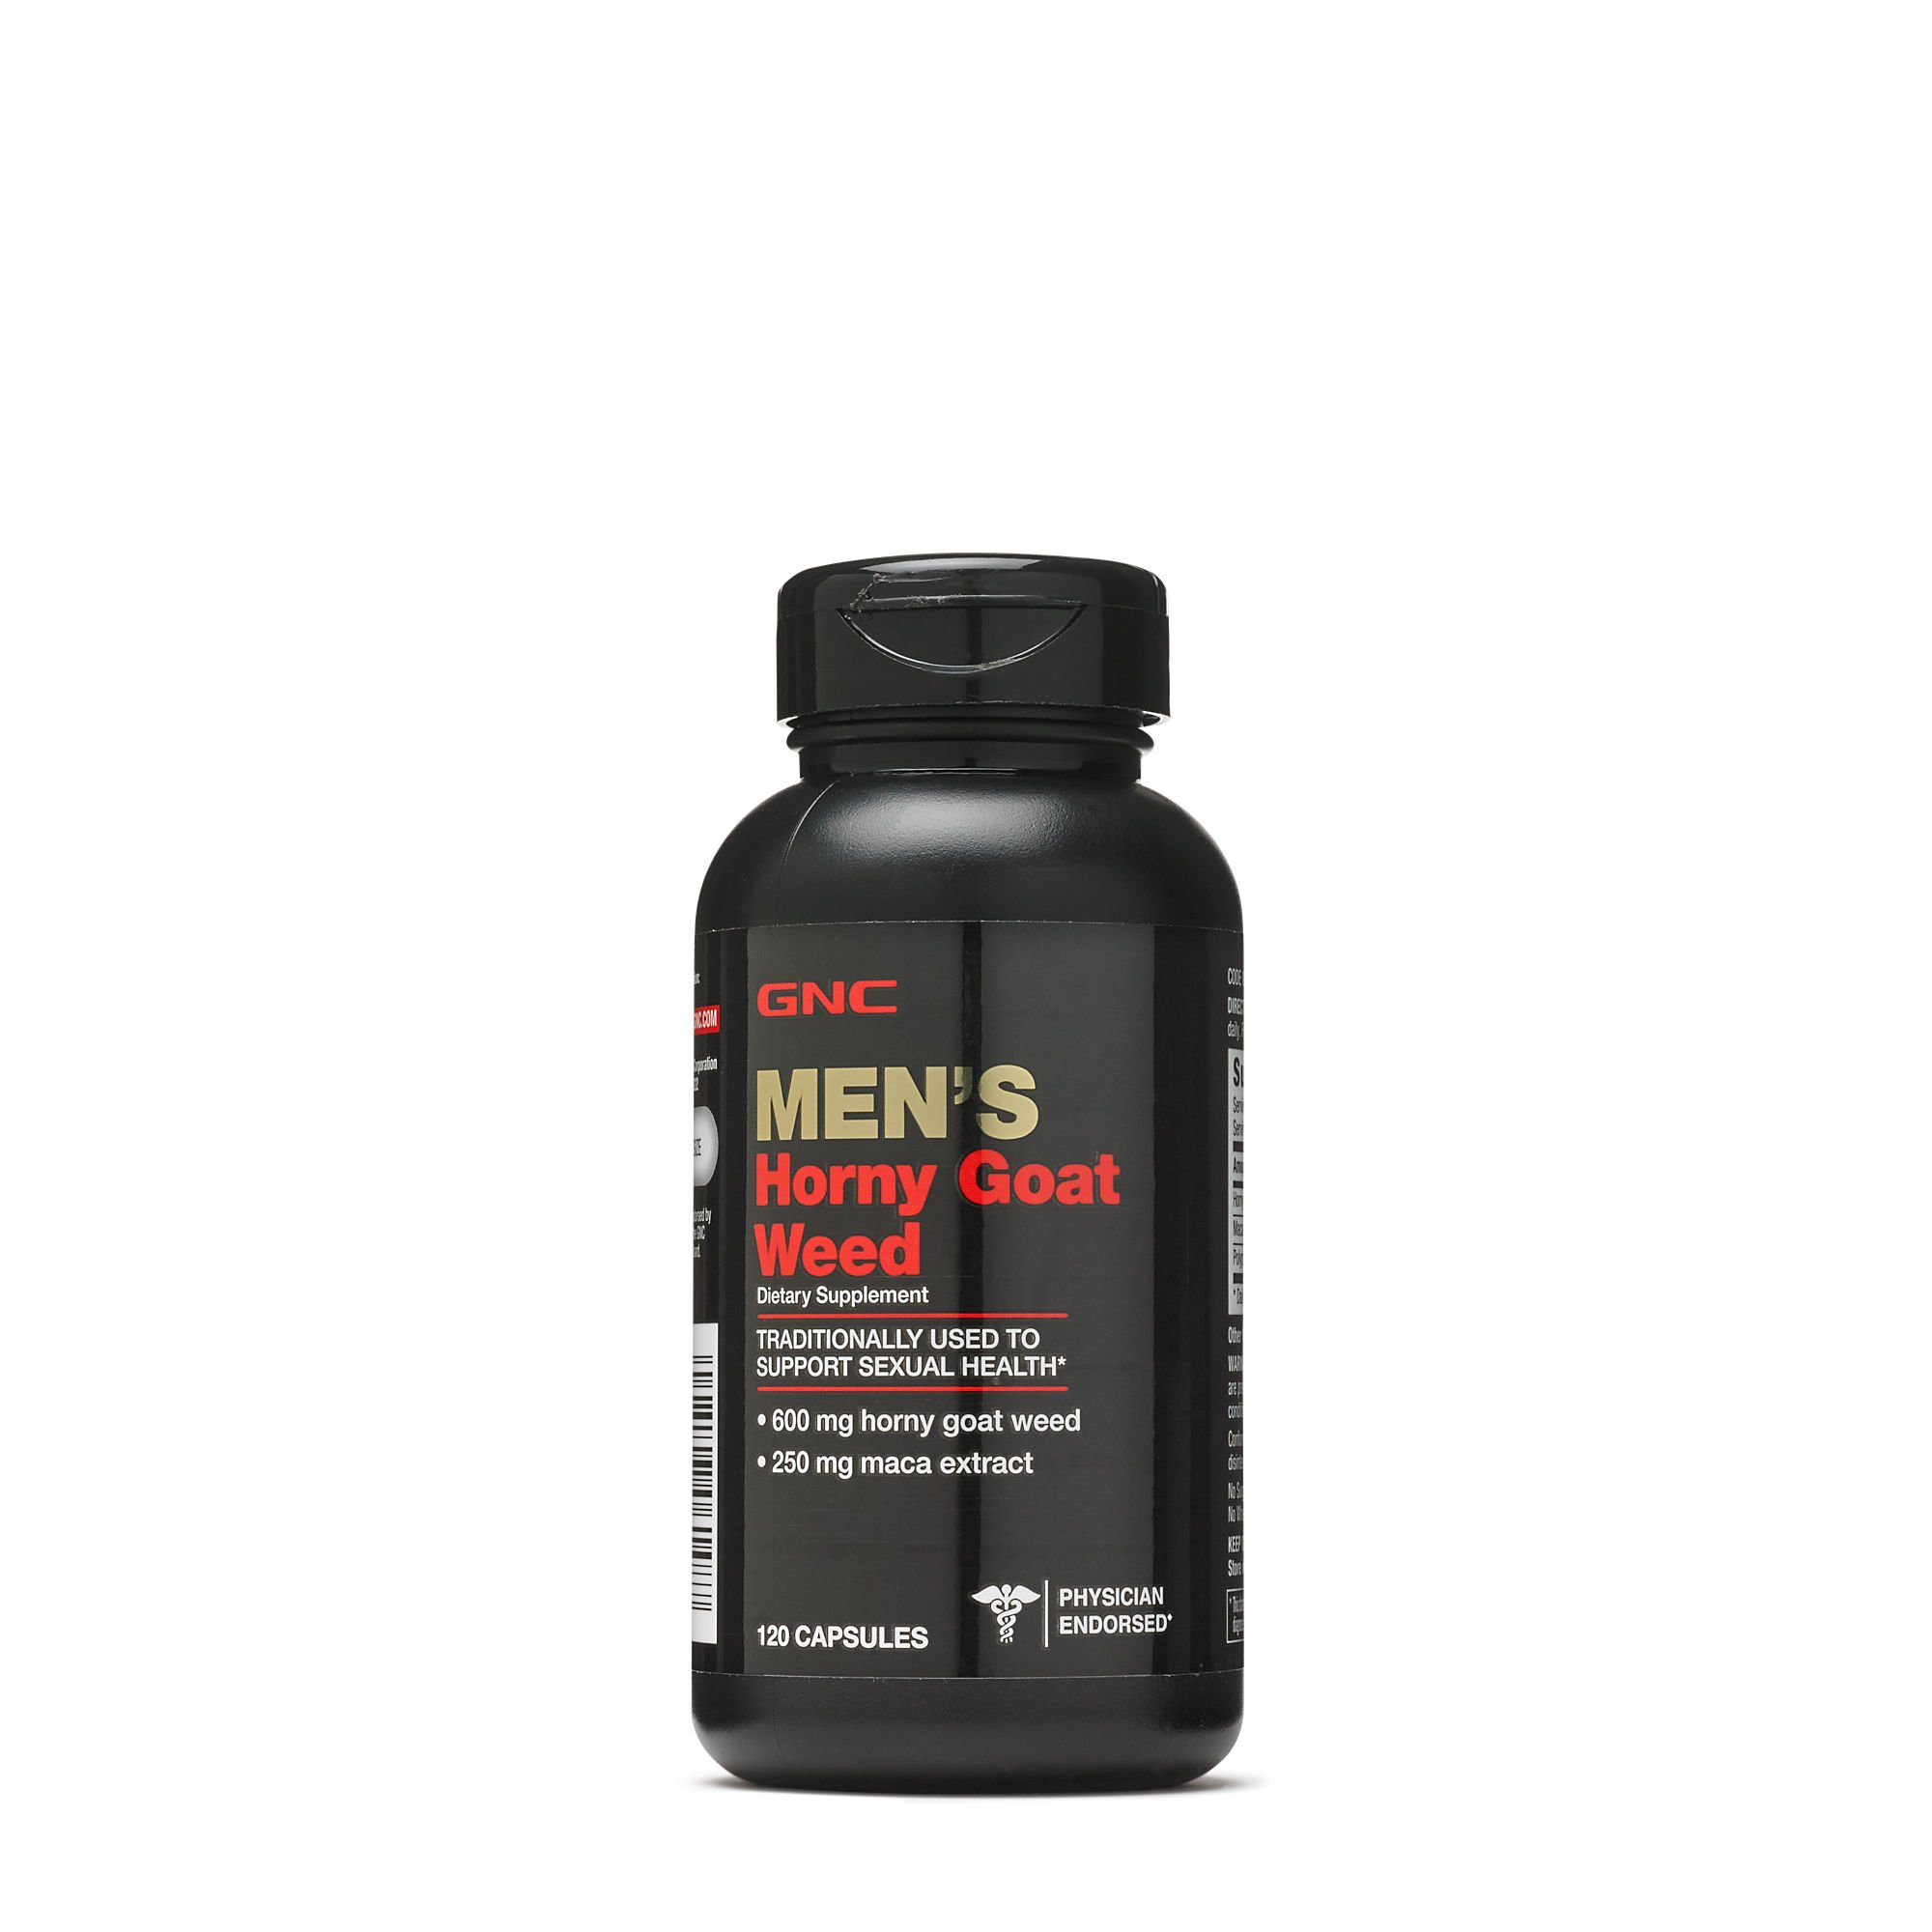 GNC Horny Goat Weed, 120 Capsules, Supports Sexual Health